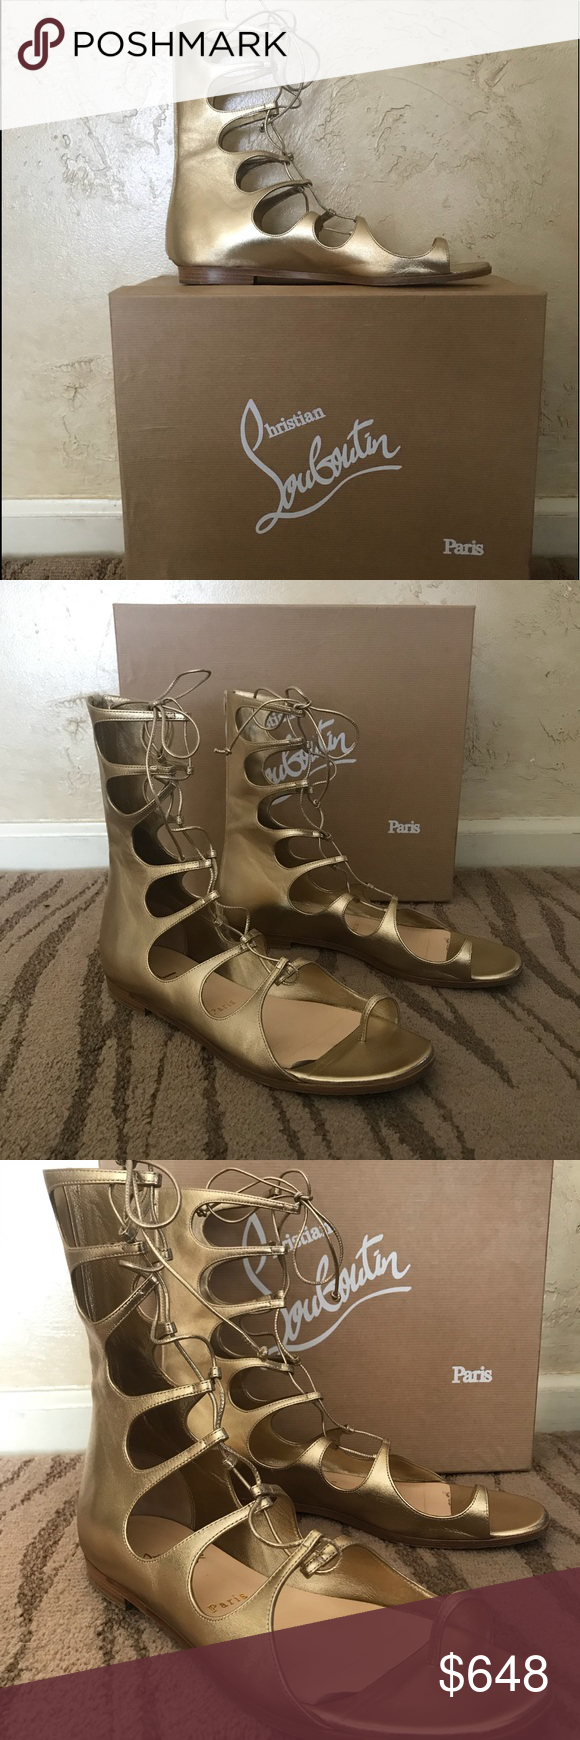 4906c4edfbc8 Christian Louboutin Sparty Gladiator Sandals😍😍💜 Absolutely perfect  Condition!!💚💚💚💚light gold color...zips up the back😍😍one of a  kind...not in ...